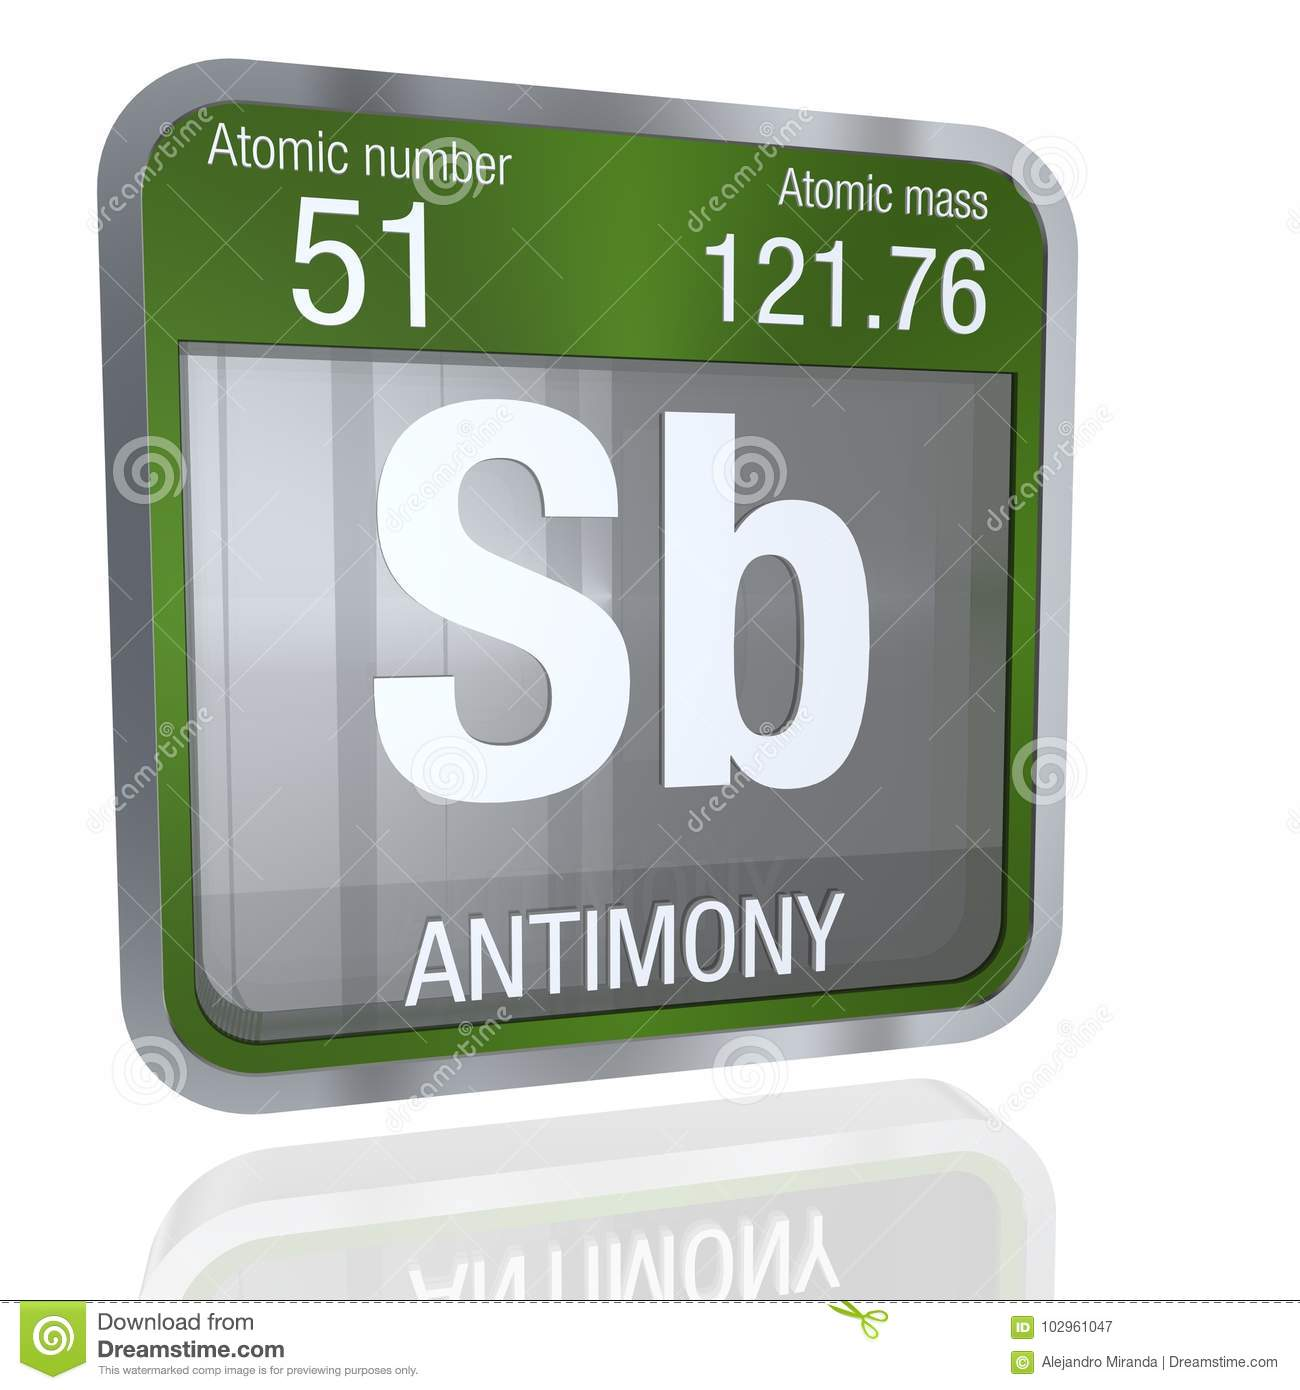 Antimony Symbol In Square Shape With Metallic Border And Transparent